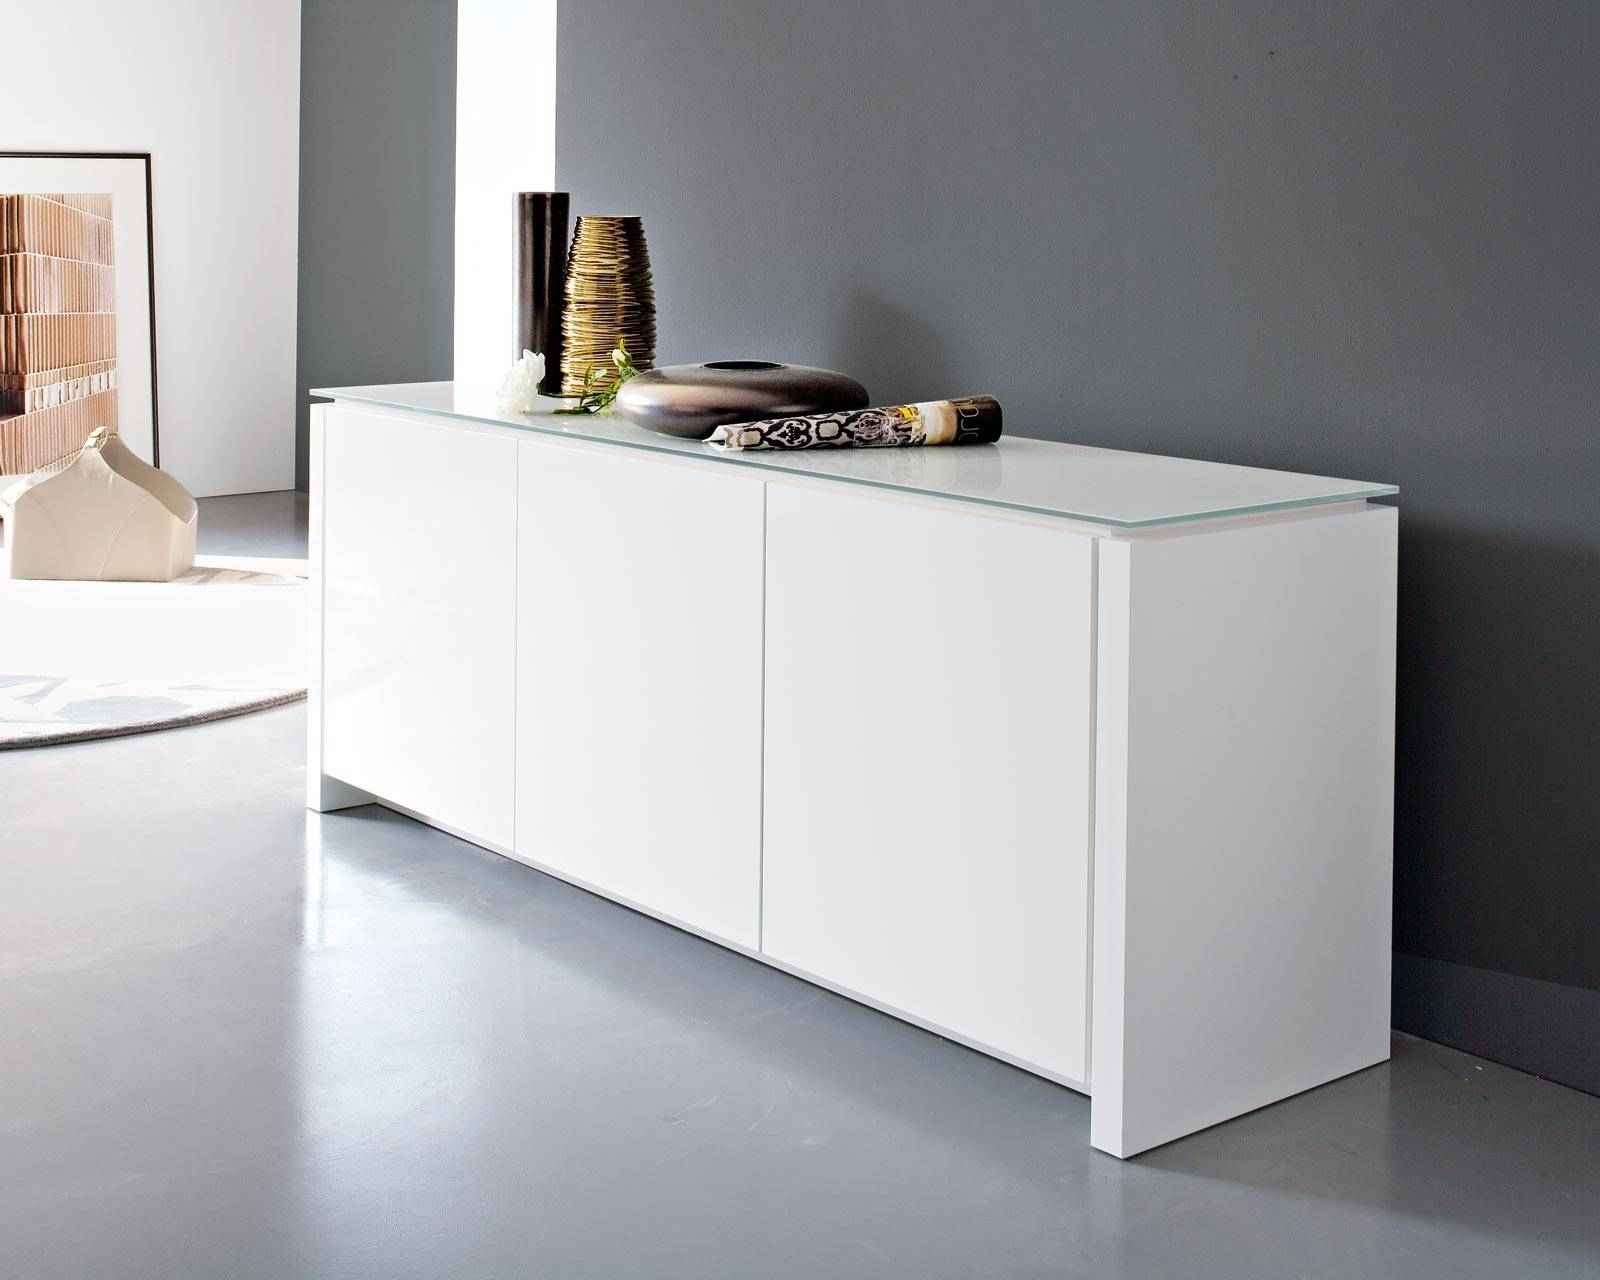 dining room sideboard white. Exciting Dining Room Sideboard White Images  Ideas house design